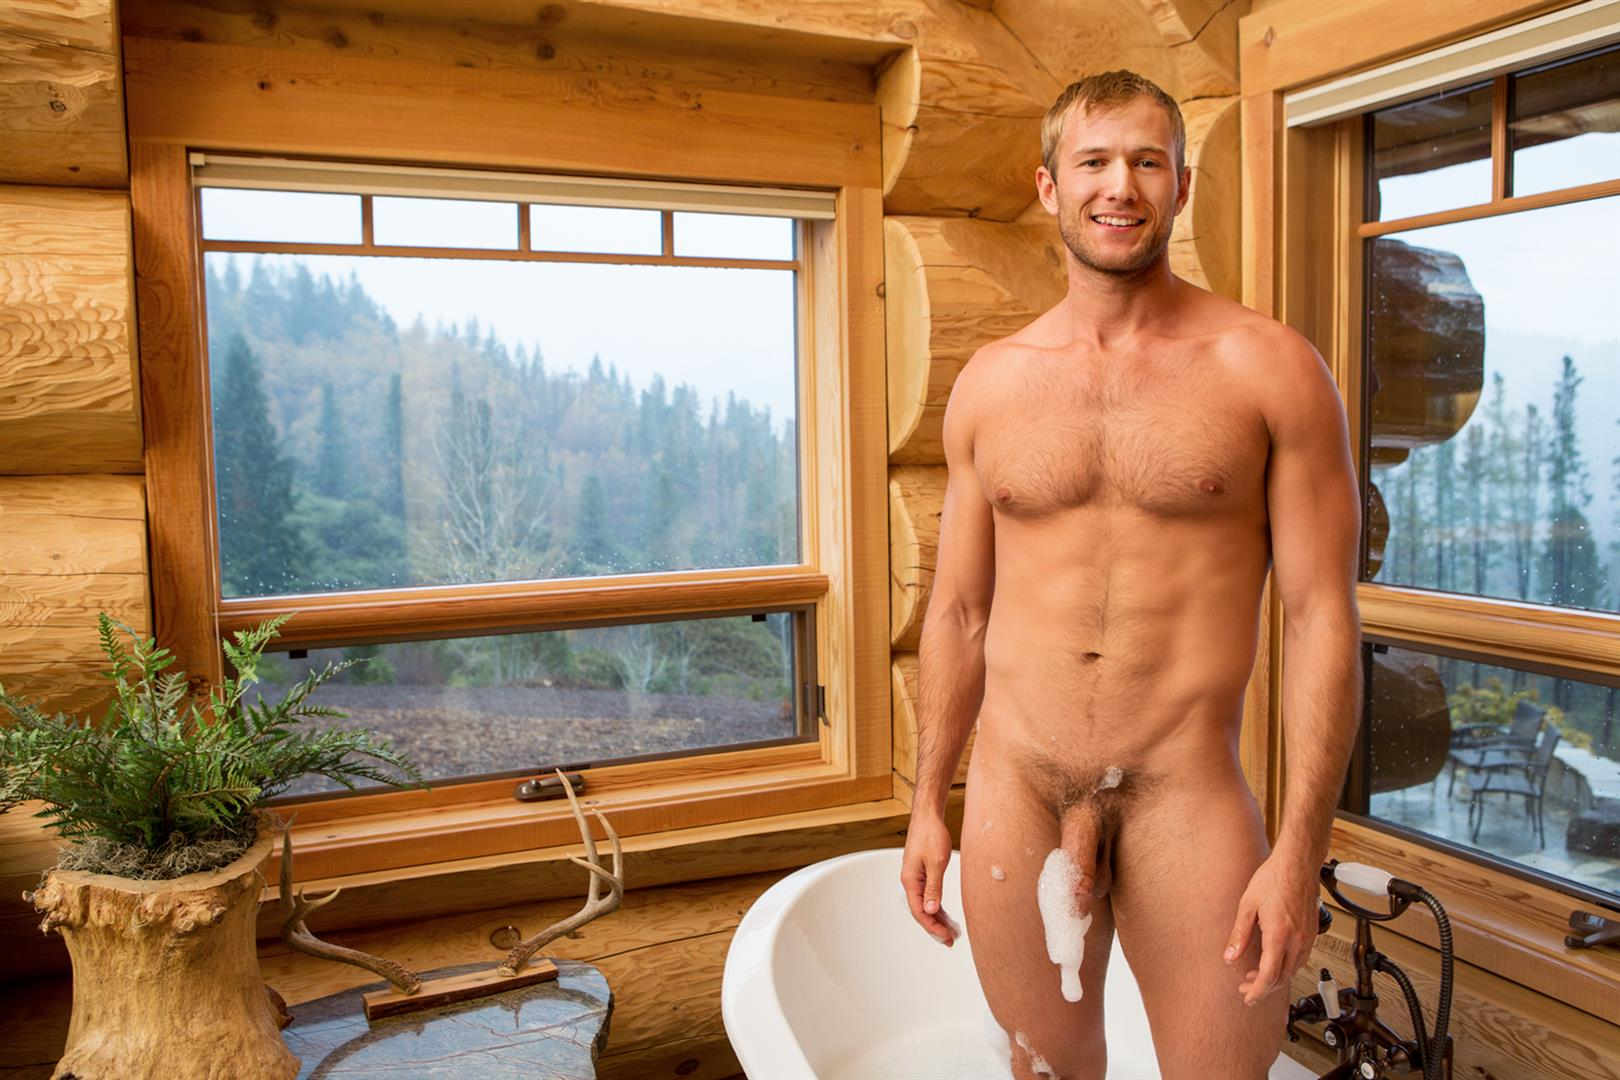 Sean Cody Winter Getaway Day 6 Big Dick Hunks Fucking Bareback Amateur Gay Porn 02 Sean Cody Takes The Boys On A 8 Day Bareback Winter Getaway